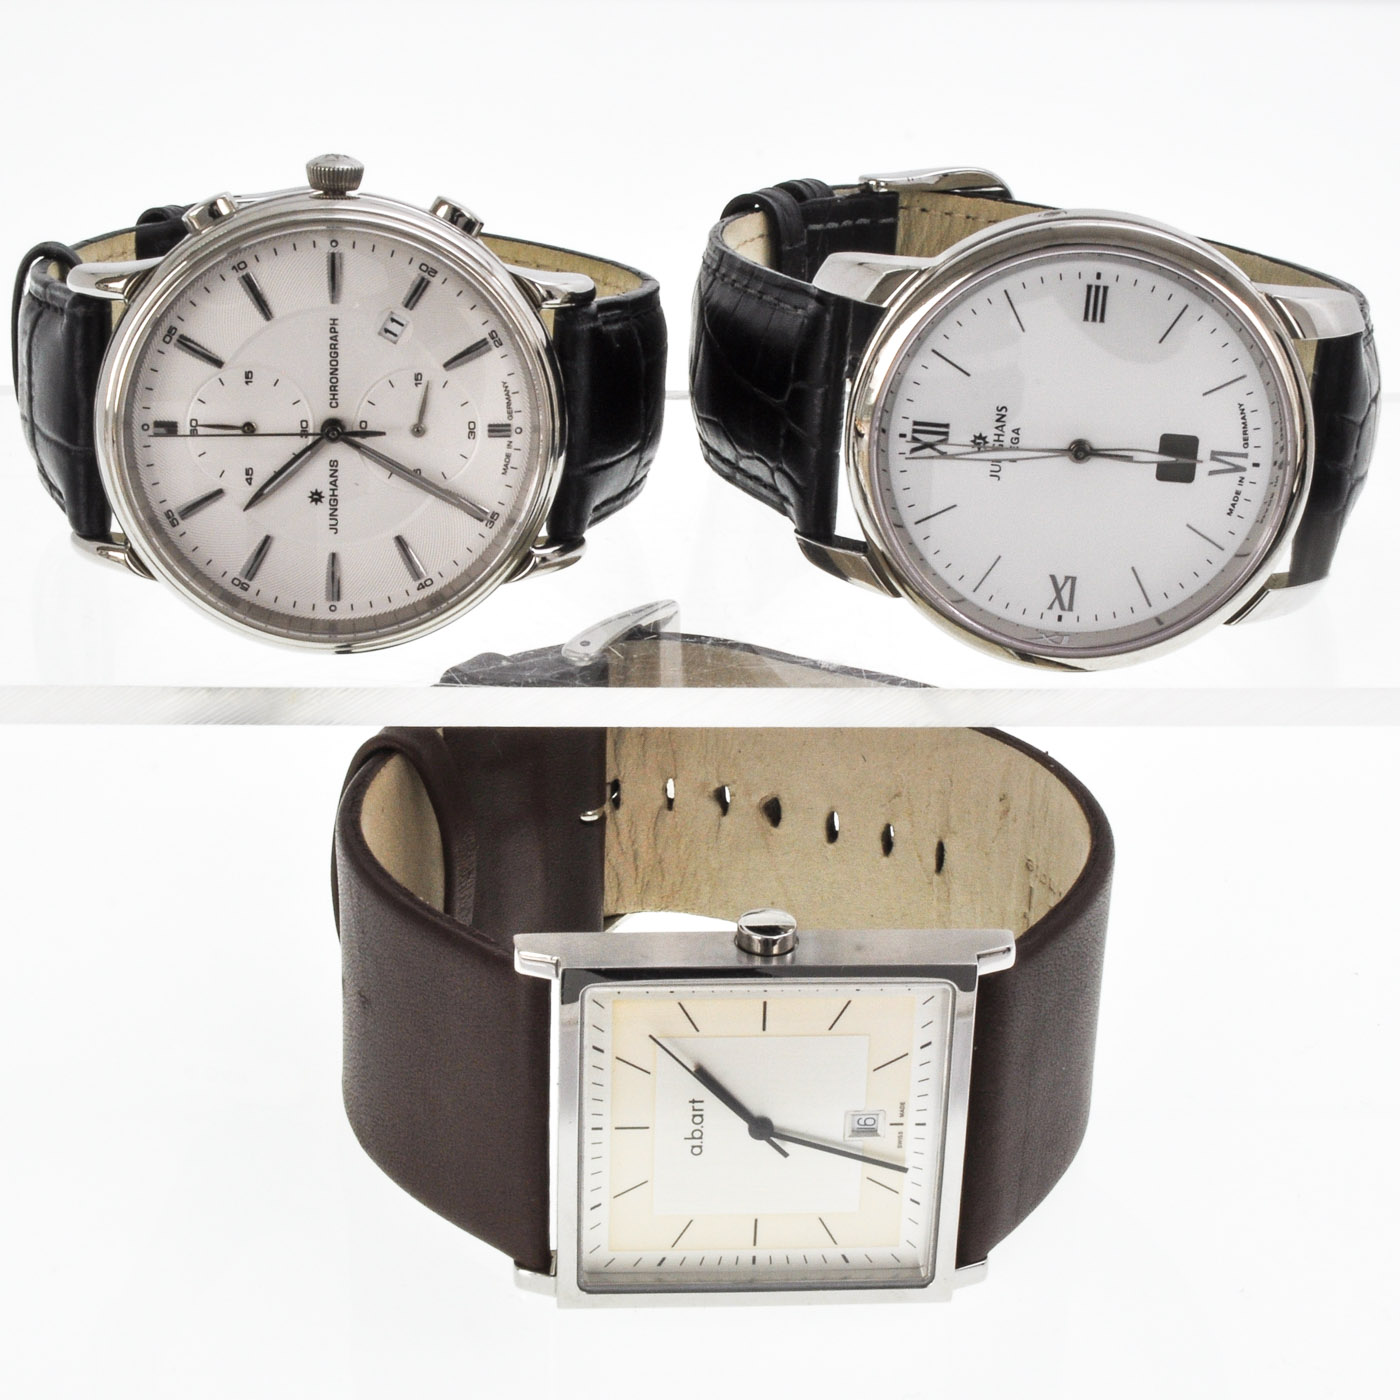 Lot 4045 - Three Watches - New